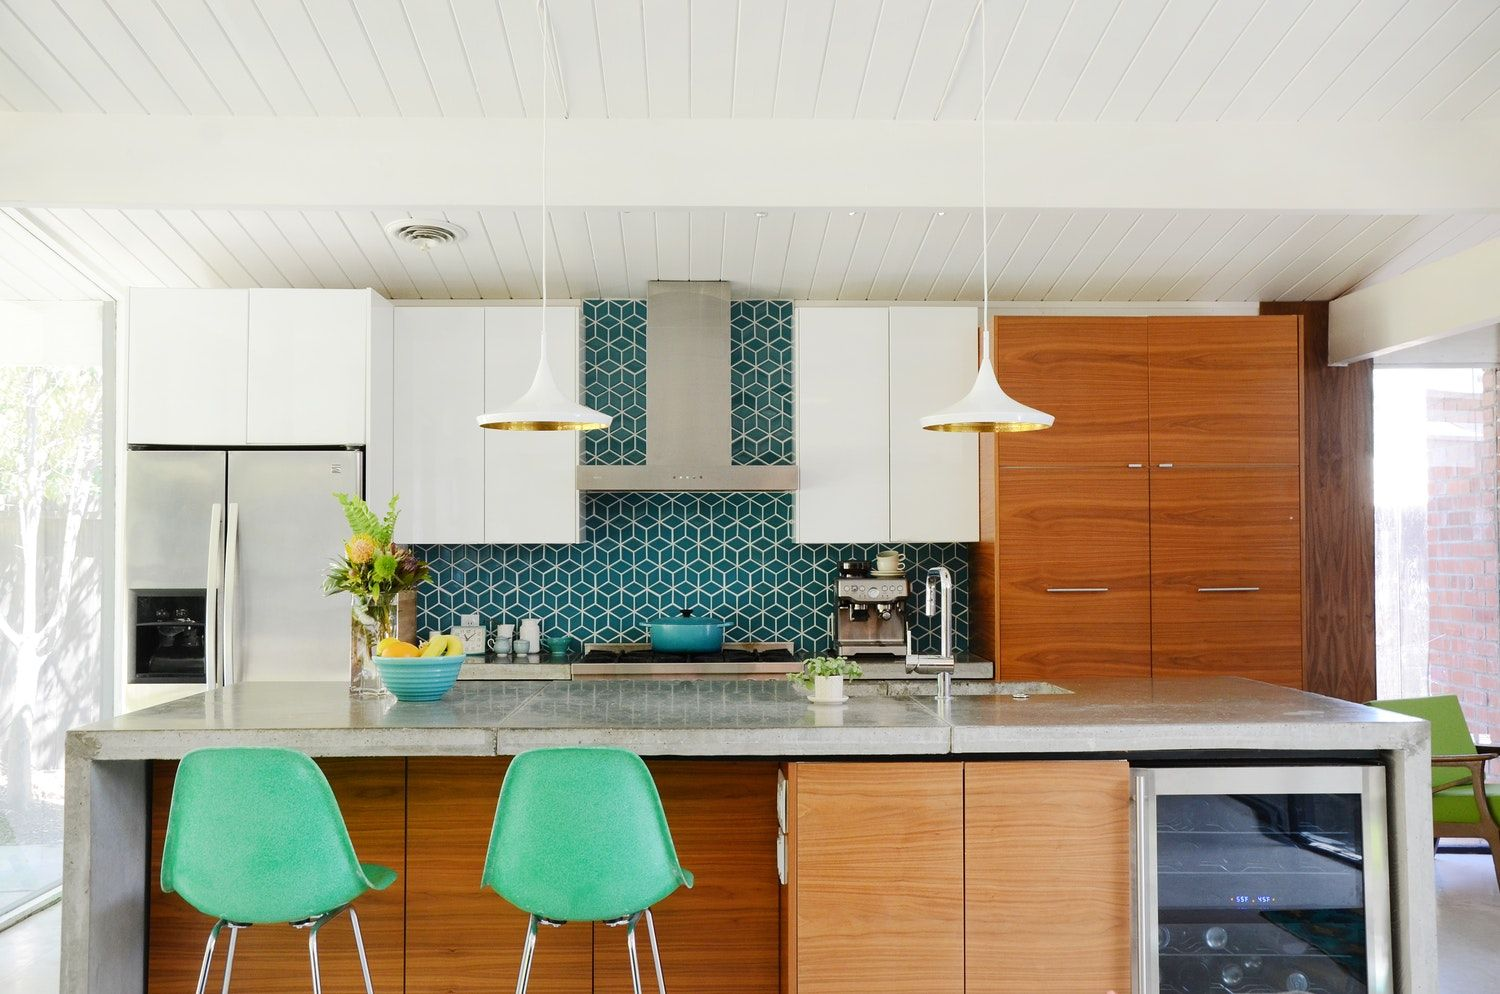 Sneak Peek Inside A Mid-Century Modern Home In Northern California 6 mid-century modern home Sneak Peek Inside A Mid-Century Modern Home In Northern California Sneak Peek Inside A Mid Century Modern Home In Northern California 6